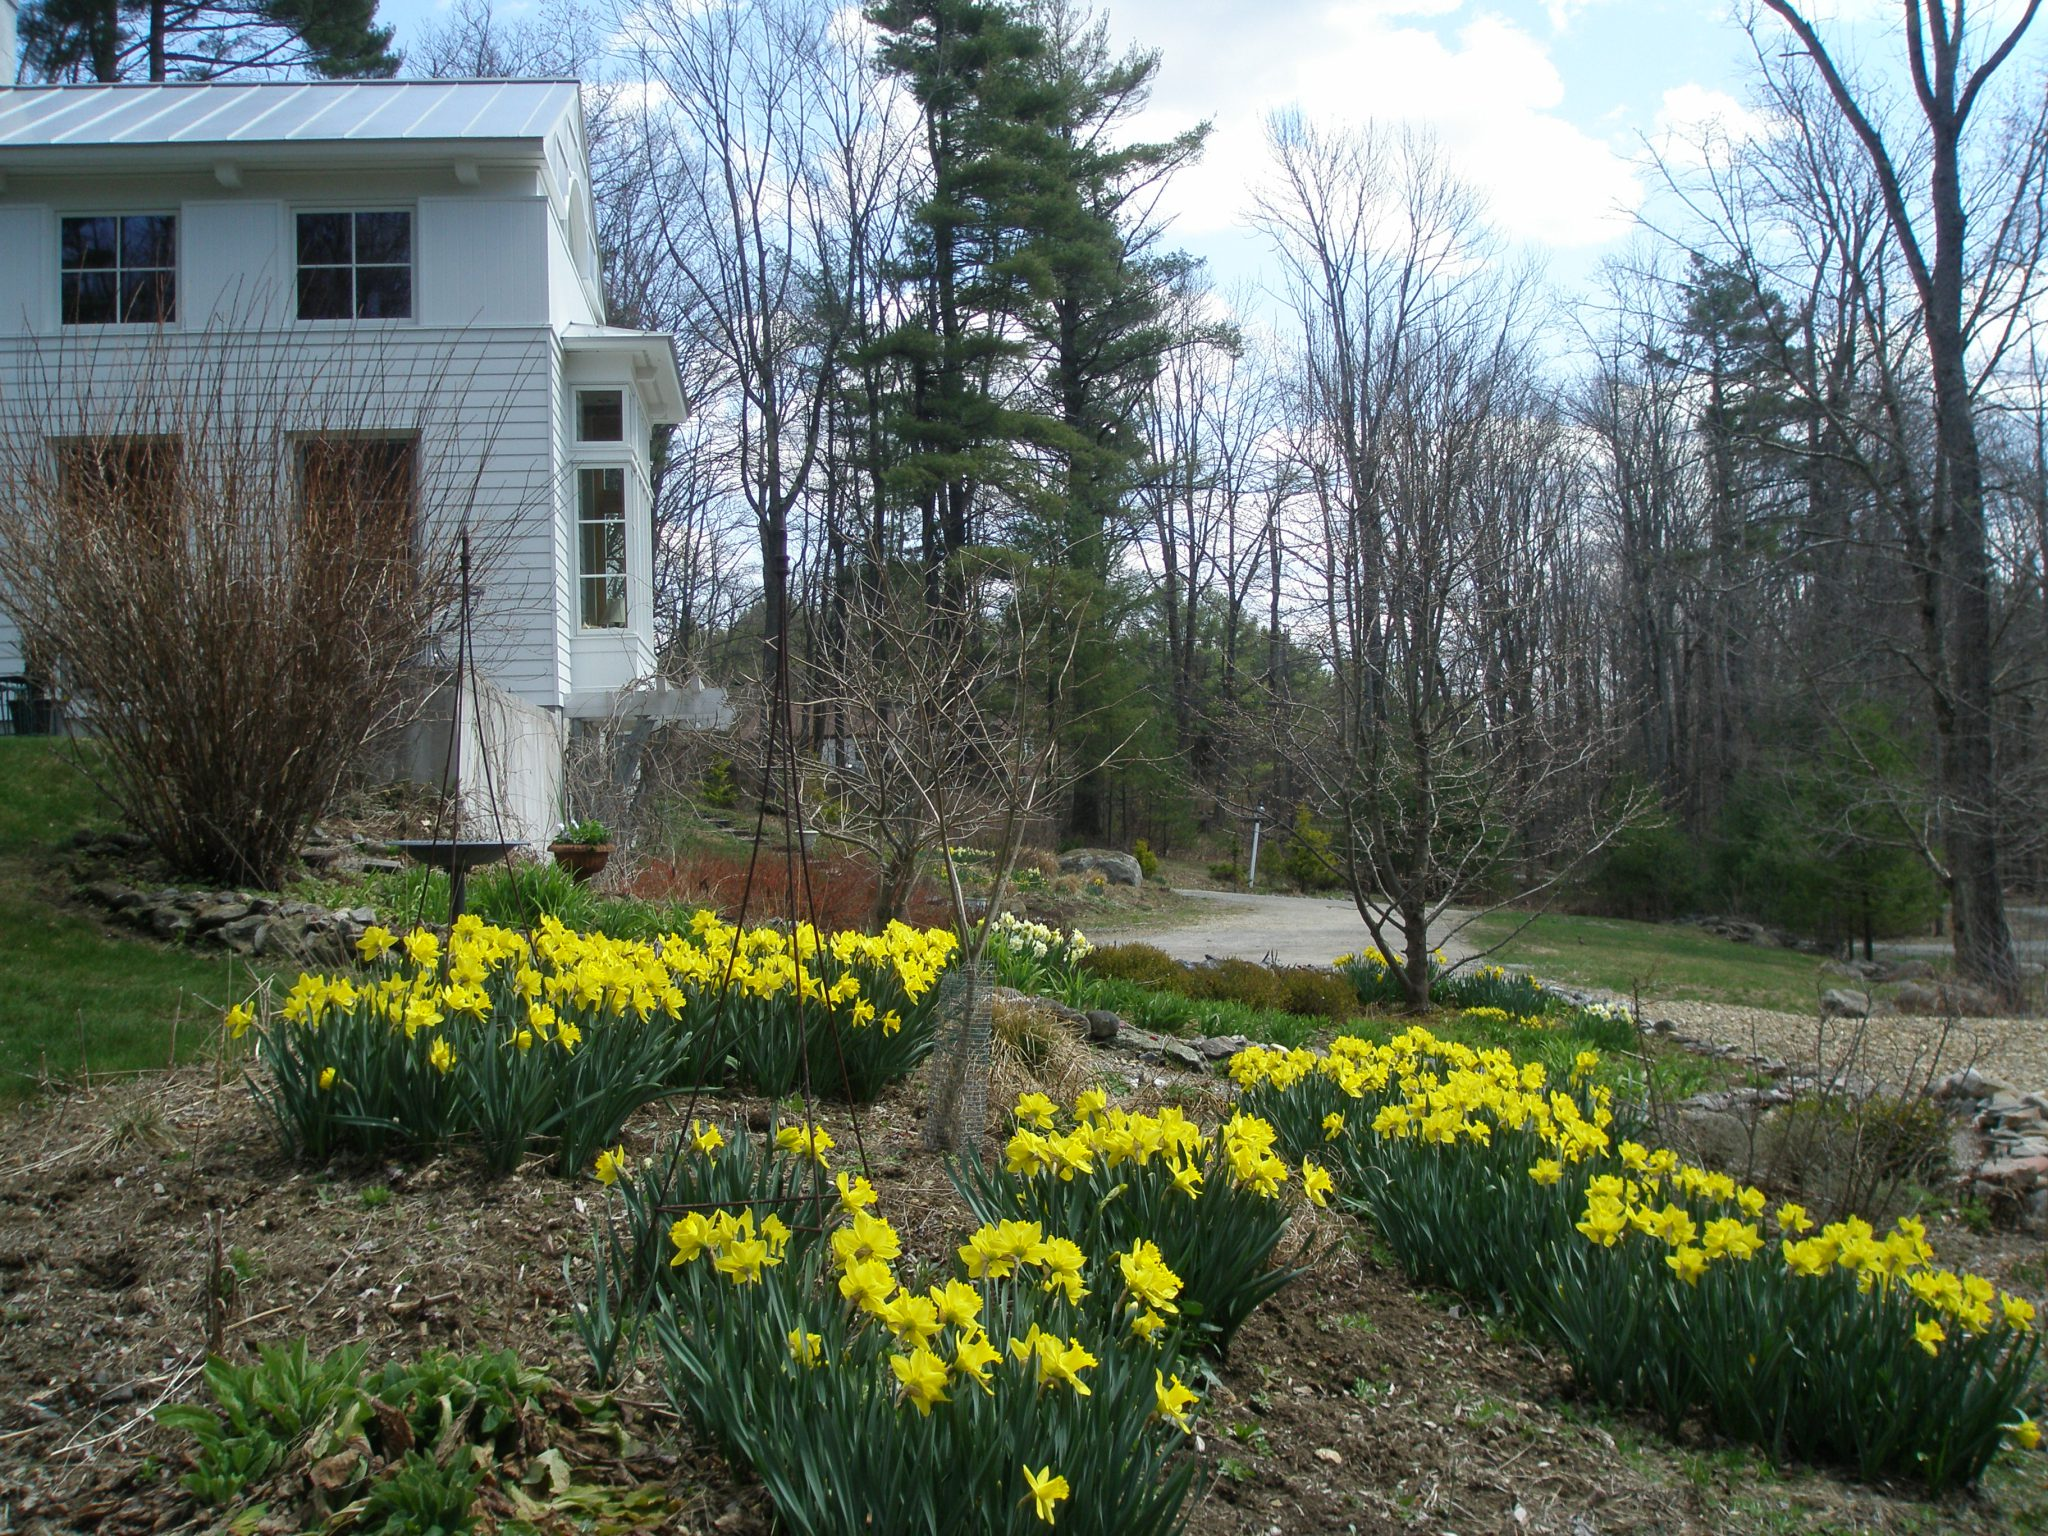 Daffodils in the West Garden